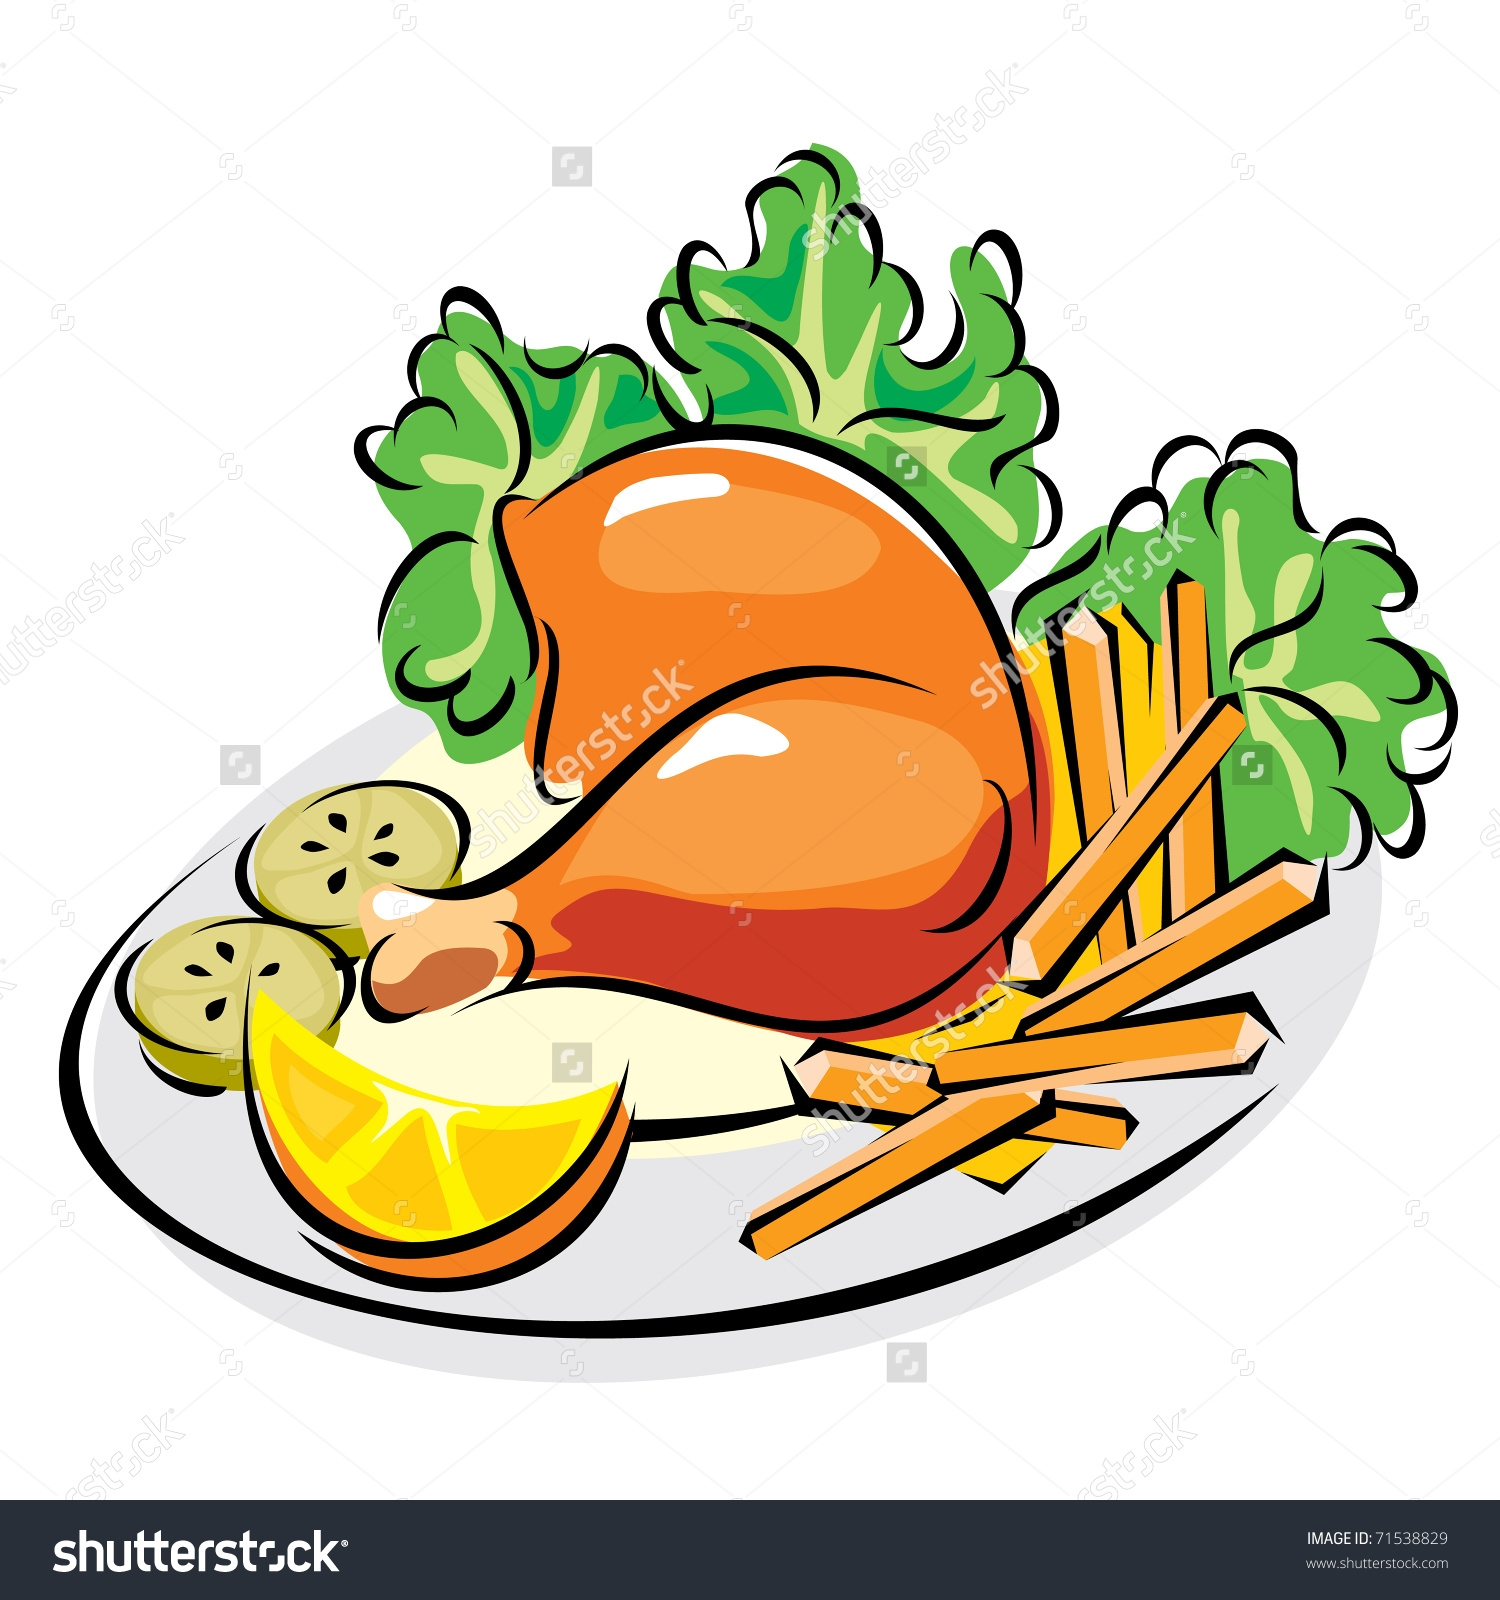 1500x1600 Plate Of Food With Chicken Clipart